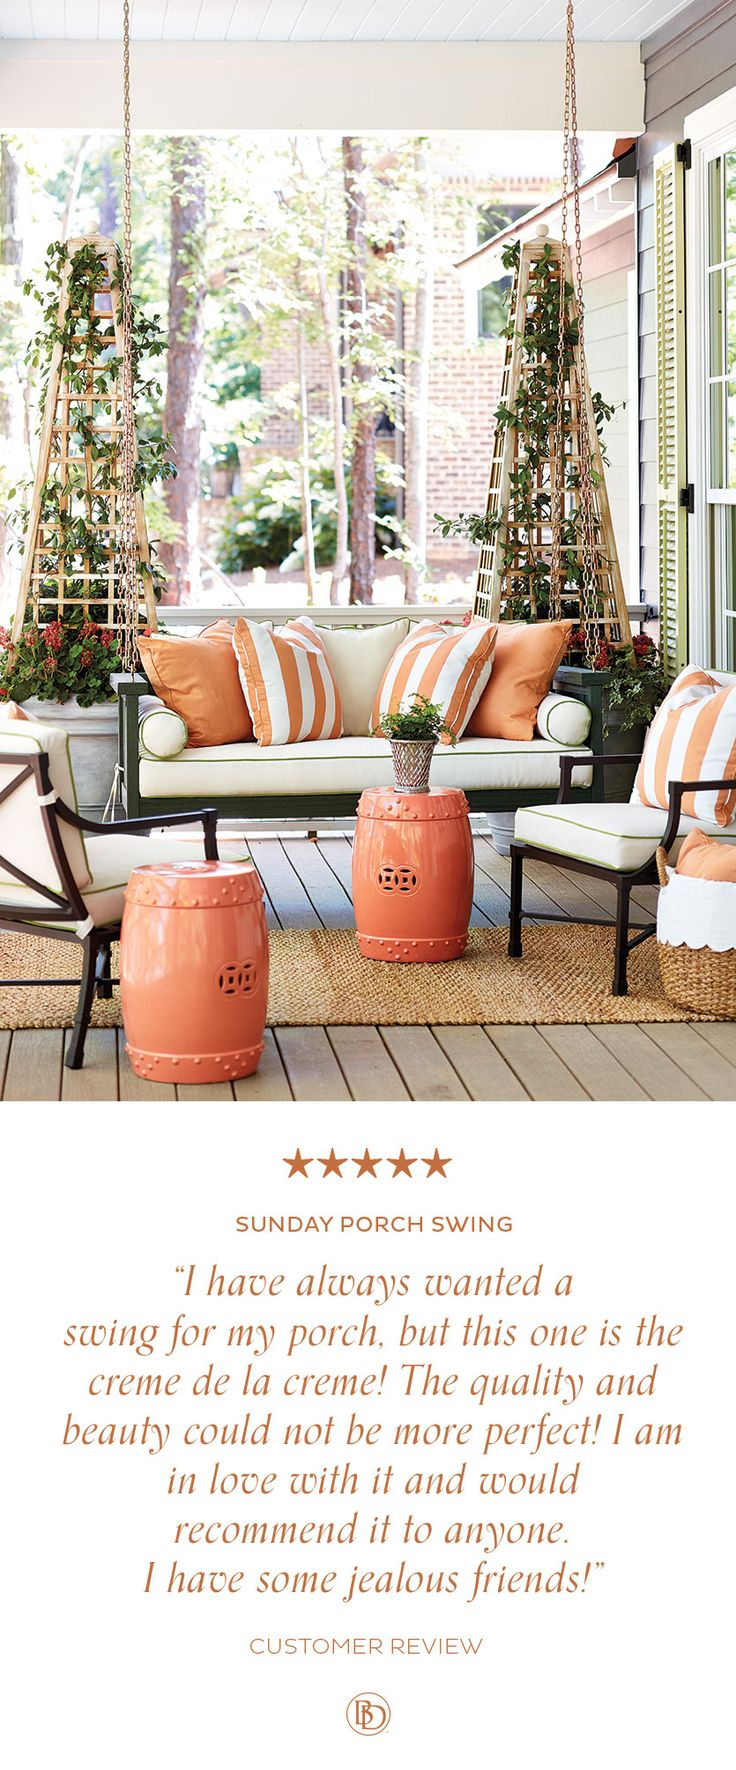 528 best outdoor decor images on pinterest outdoor ideas ballard designs sunday porch swing is the perfect addition to your relaxing outdoor space